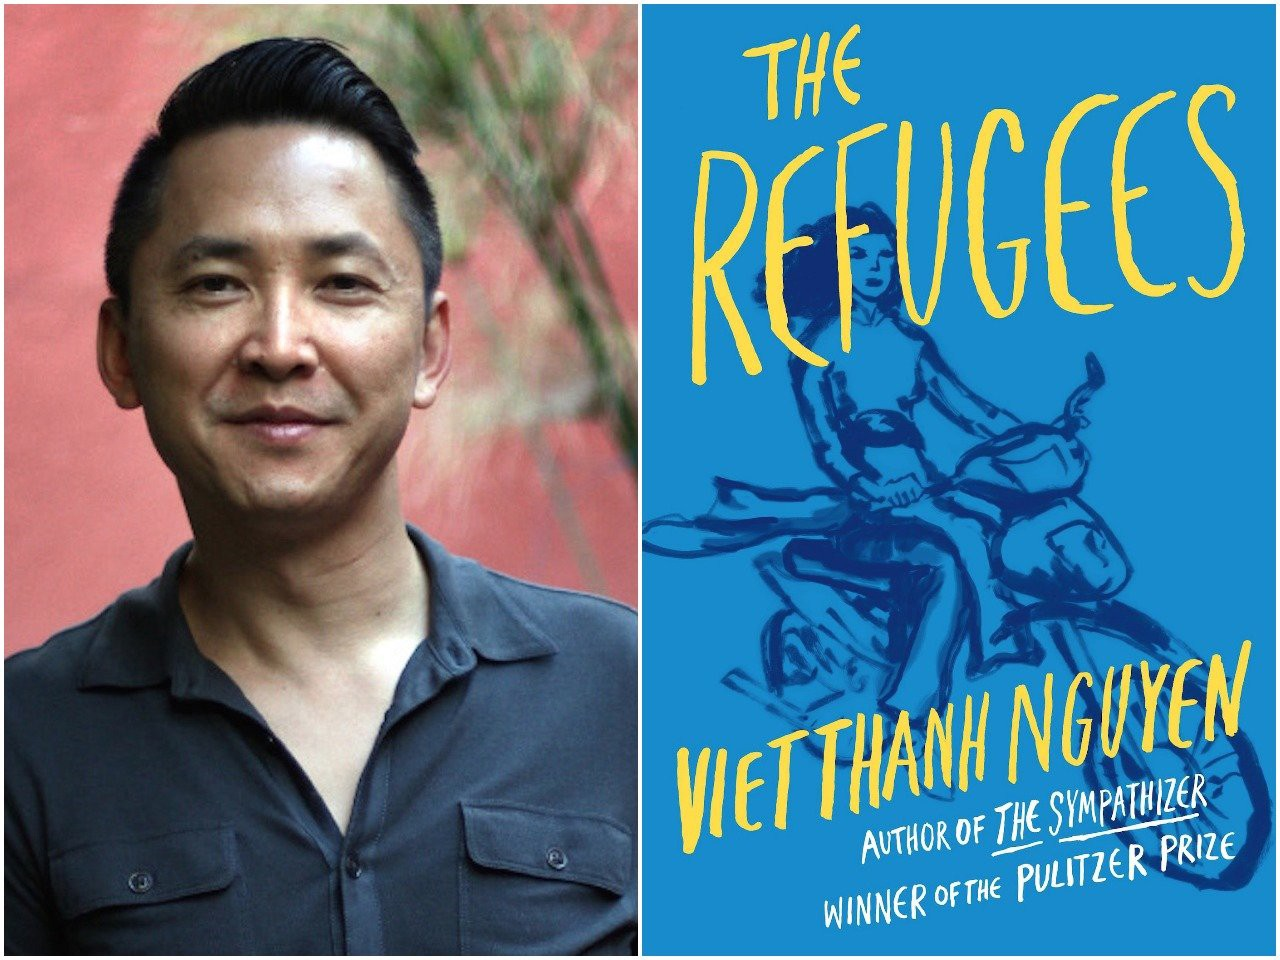 Book Club @ The Miller Room: THE REFUGEES by Viet Thanh Nguyen